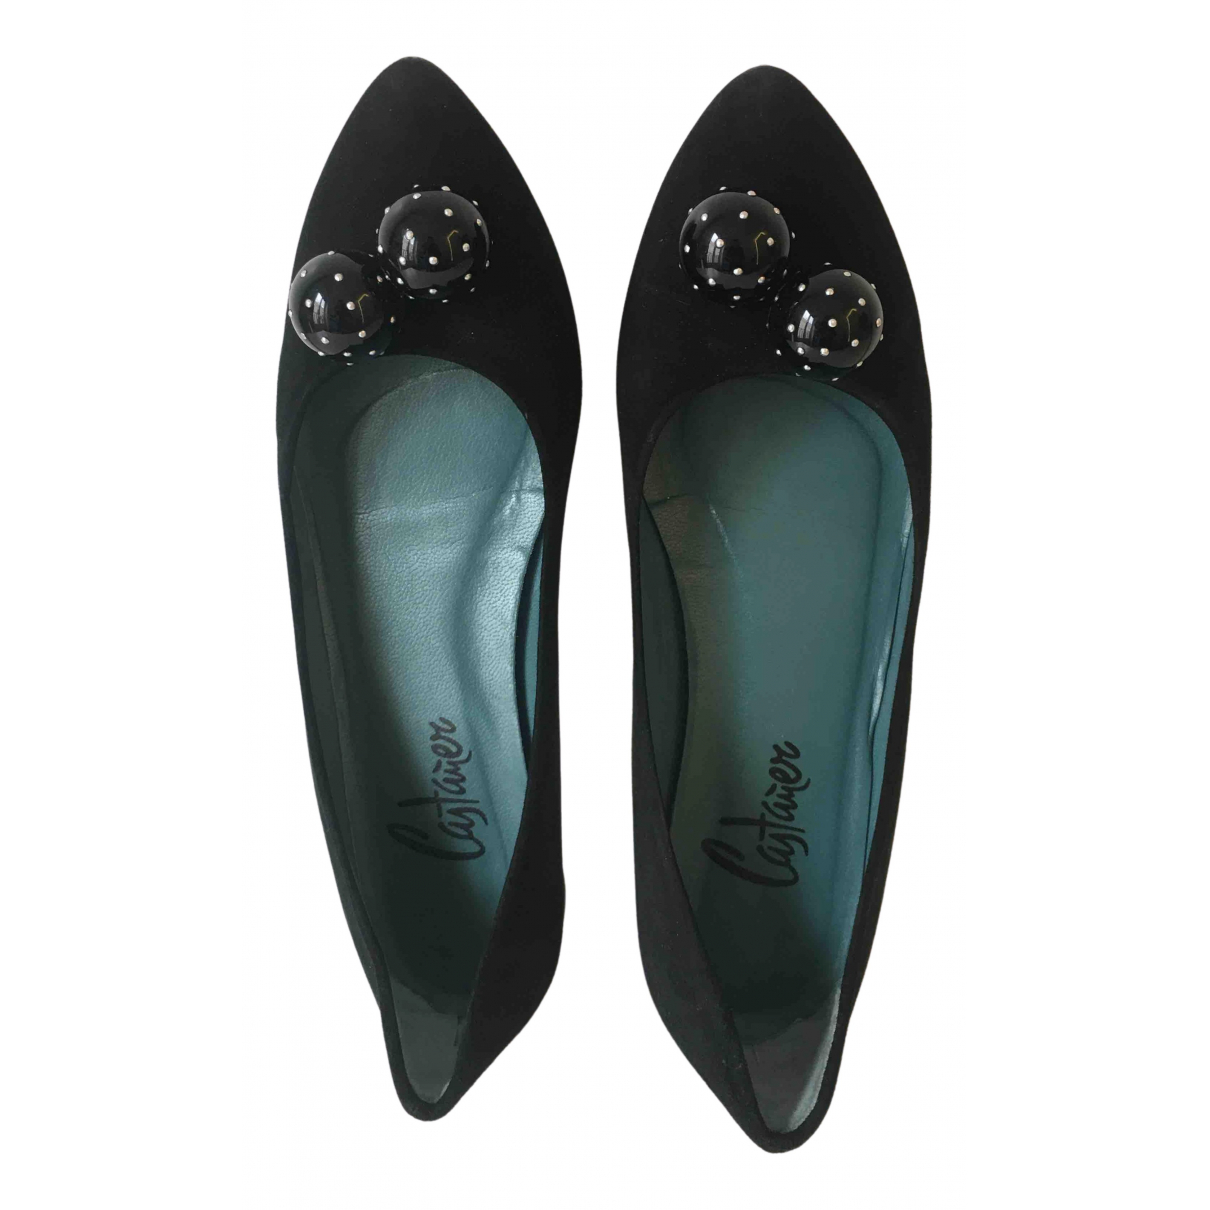 Castaner N Black Suede Ballet flats for Women 38 EU